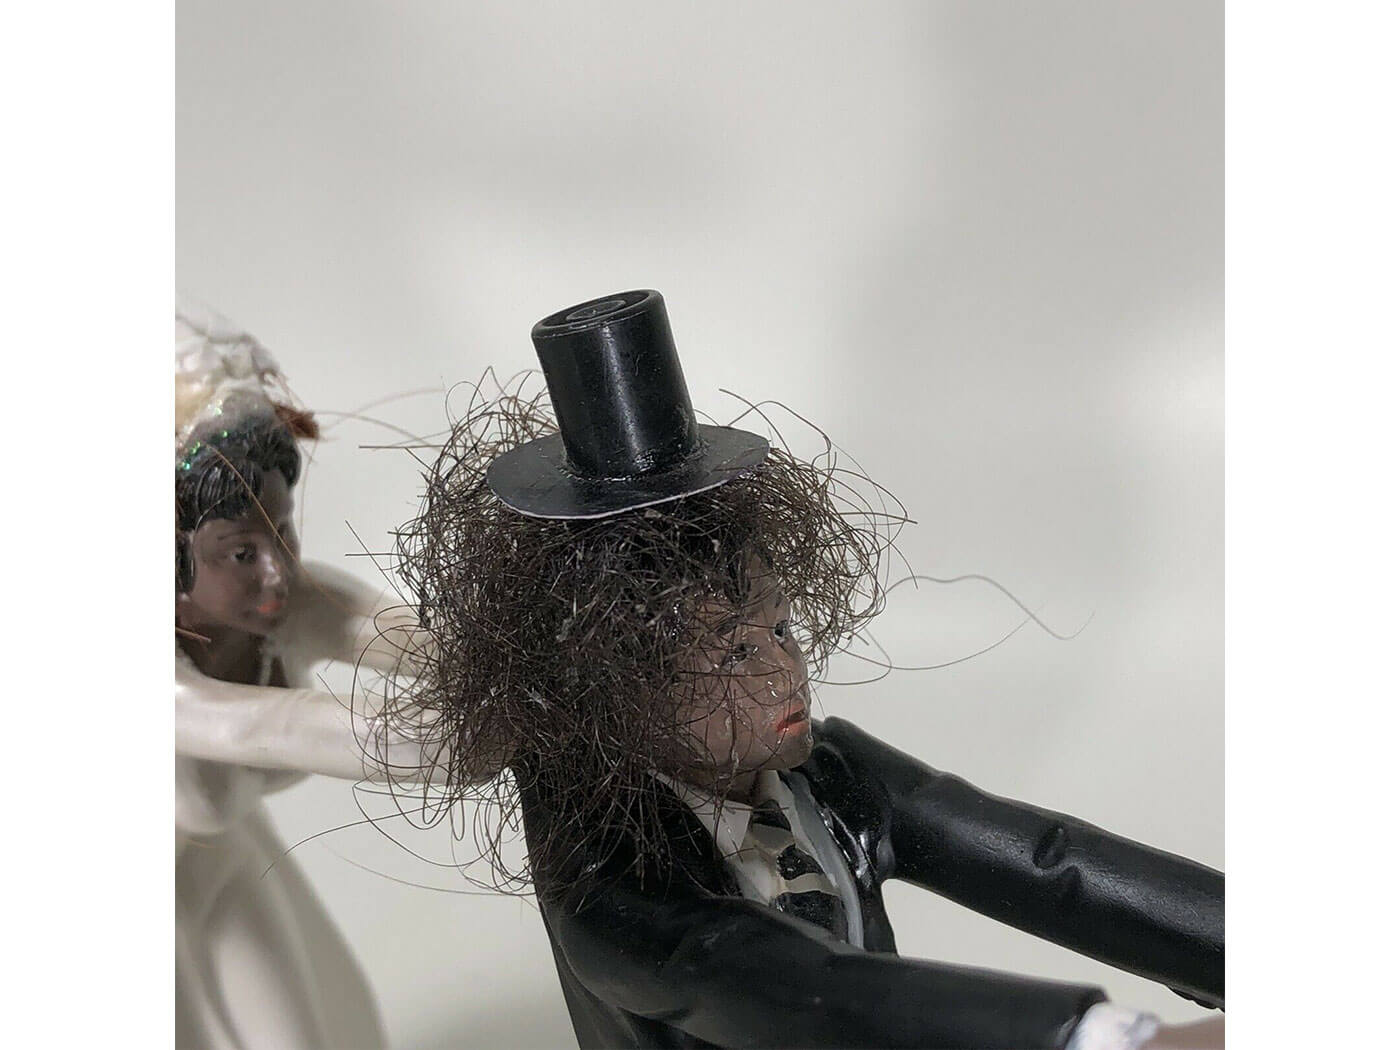 Slash's wedding cake topper, made with human hair.